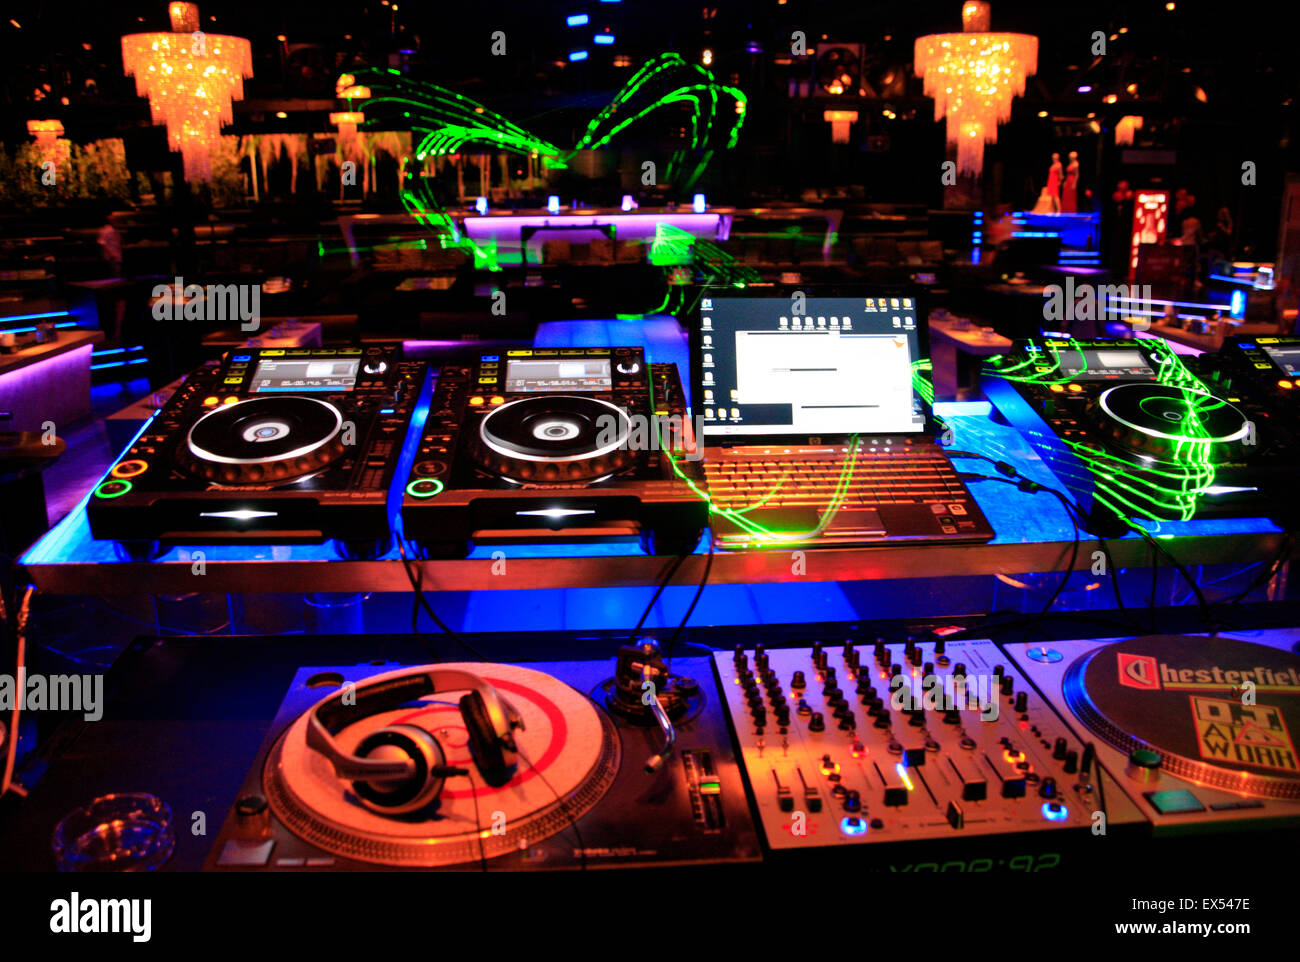 Music / sound mixing equipment decks, computers, laptops, and laser beam designs in a nightclub in Athens, Greece - Stock Image